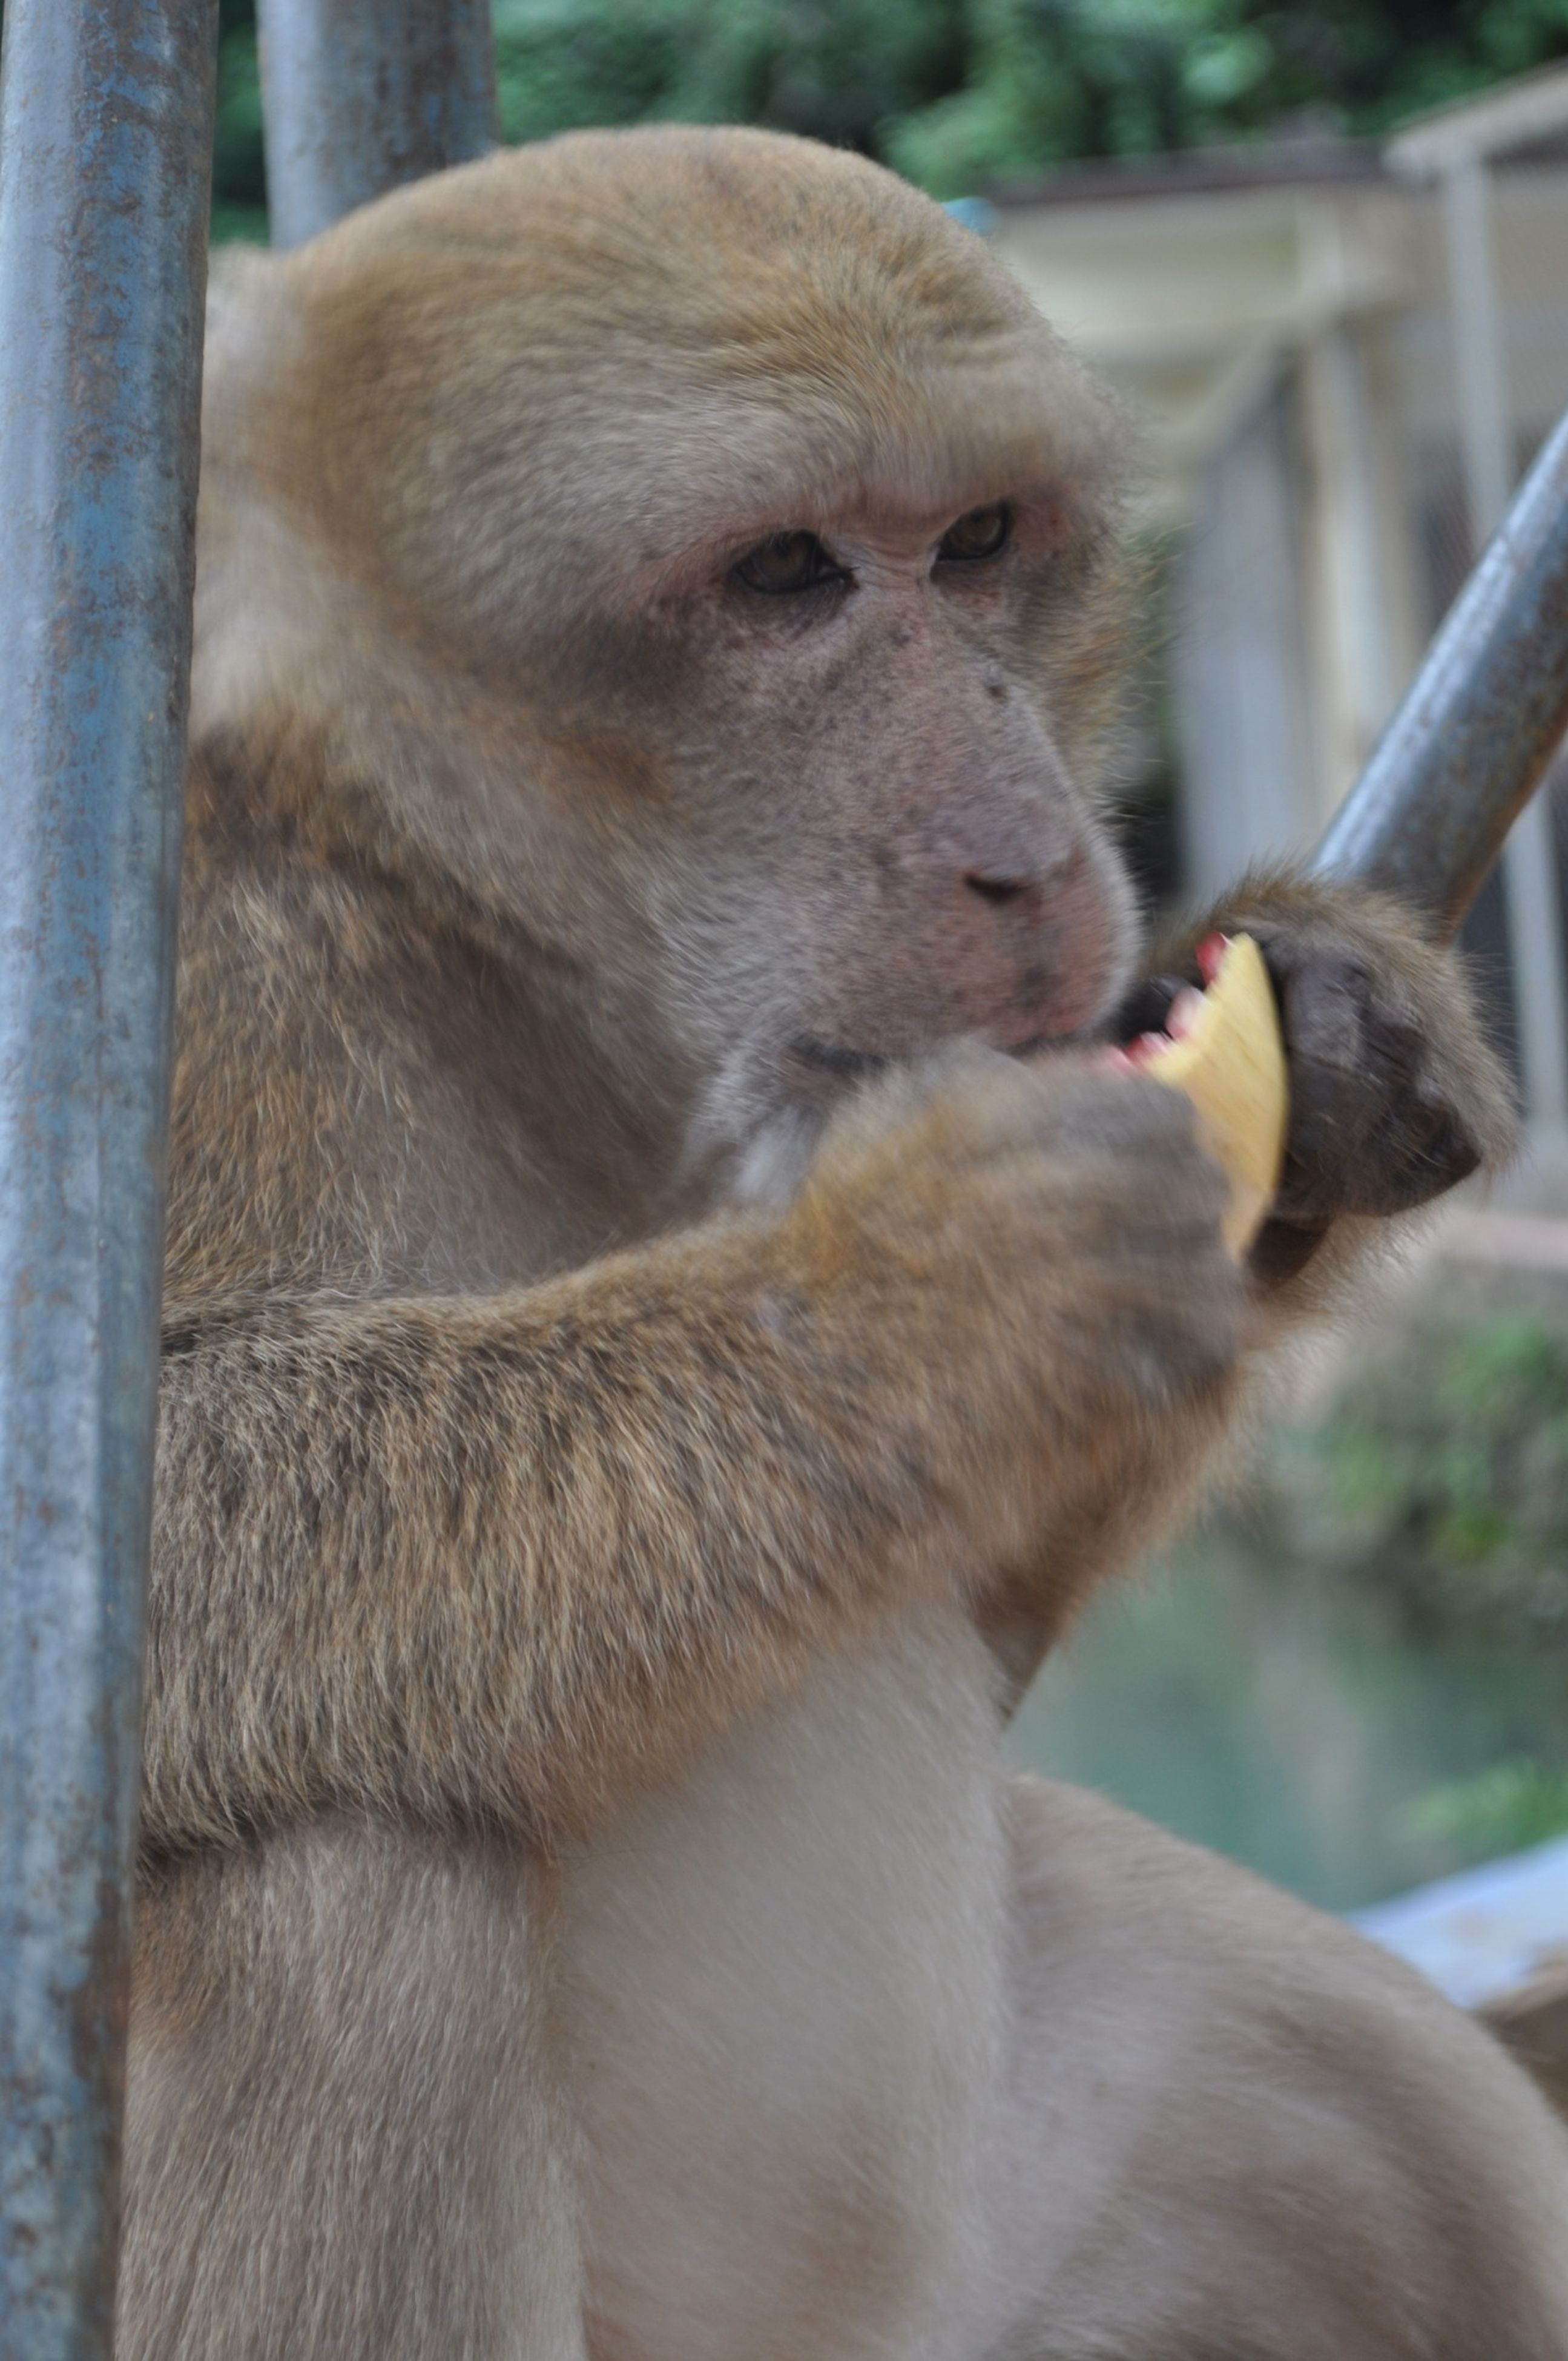 animal themes, one animal, mammal, animals in the wild, wildlife, focus on foreground, monkey, close-up, looking away, day, brown, relaxation, zoo, outdoors, nature, sitting, animal head, animals in captivity, no people, primate